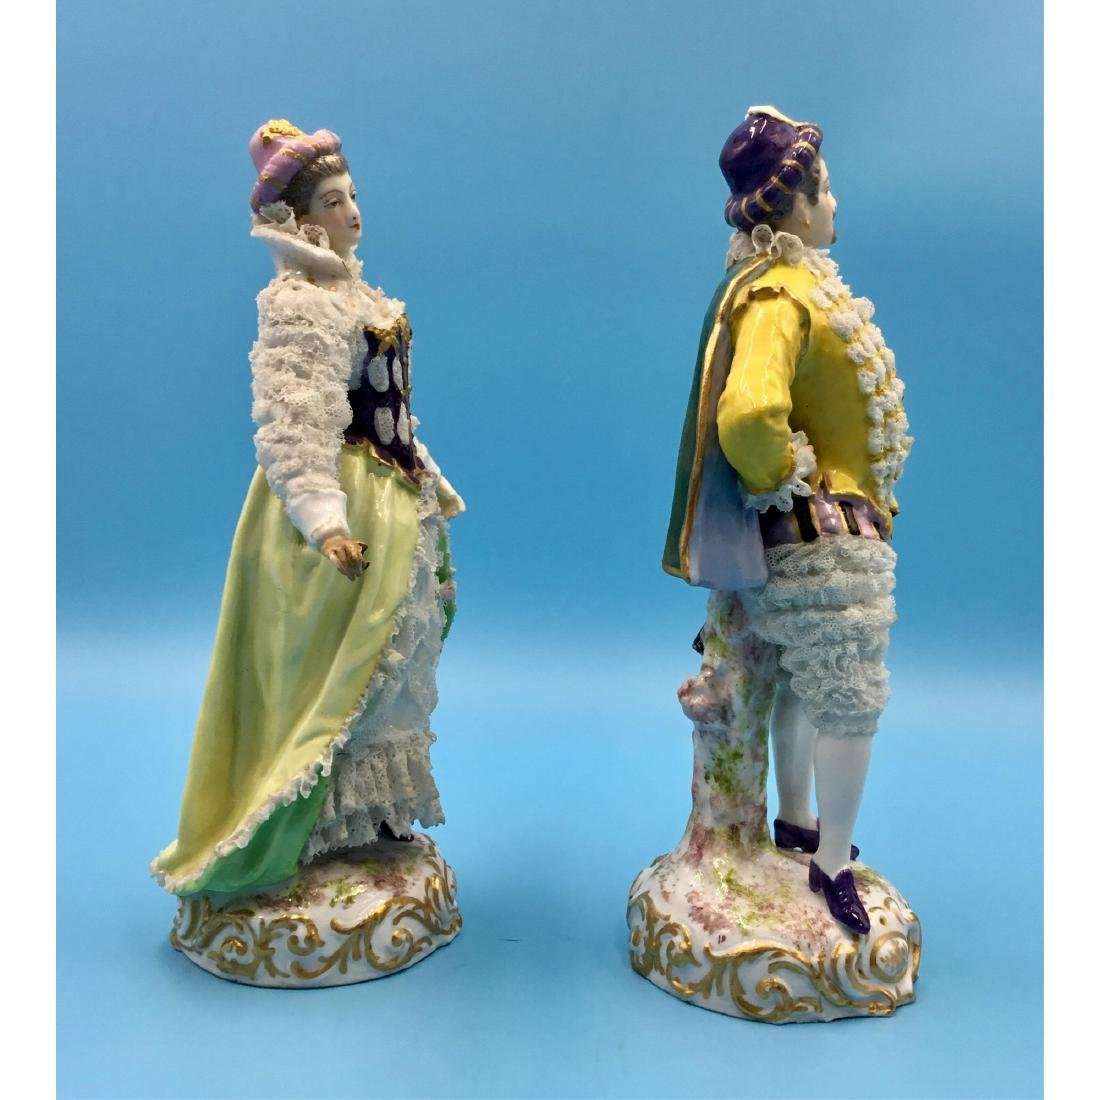 PAIR OF ACHILLE BLOCH FRENCH PORCELAIN FIGURINES - 4